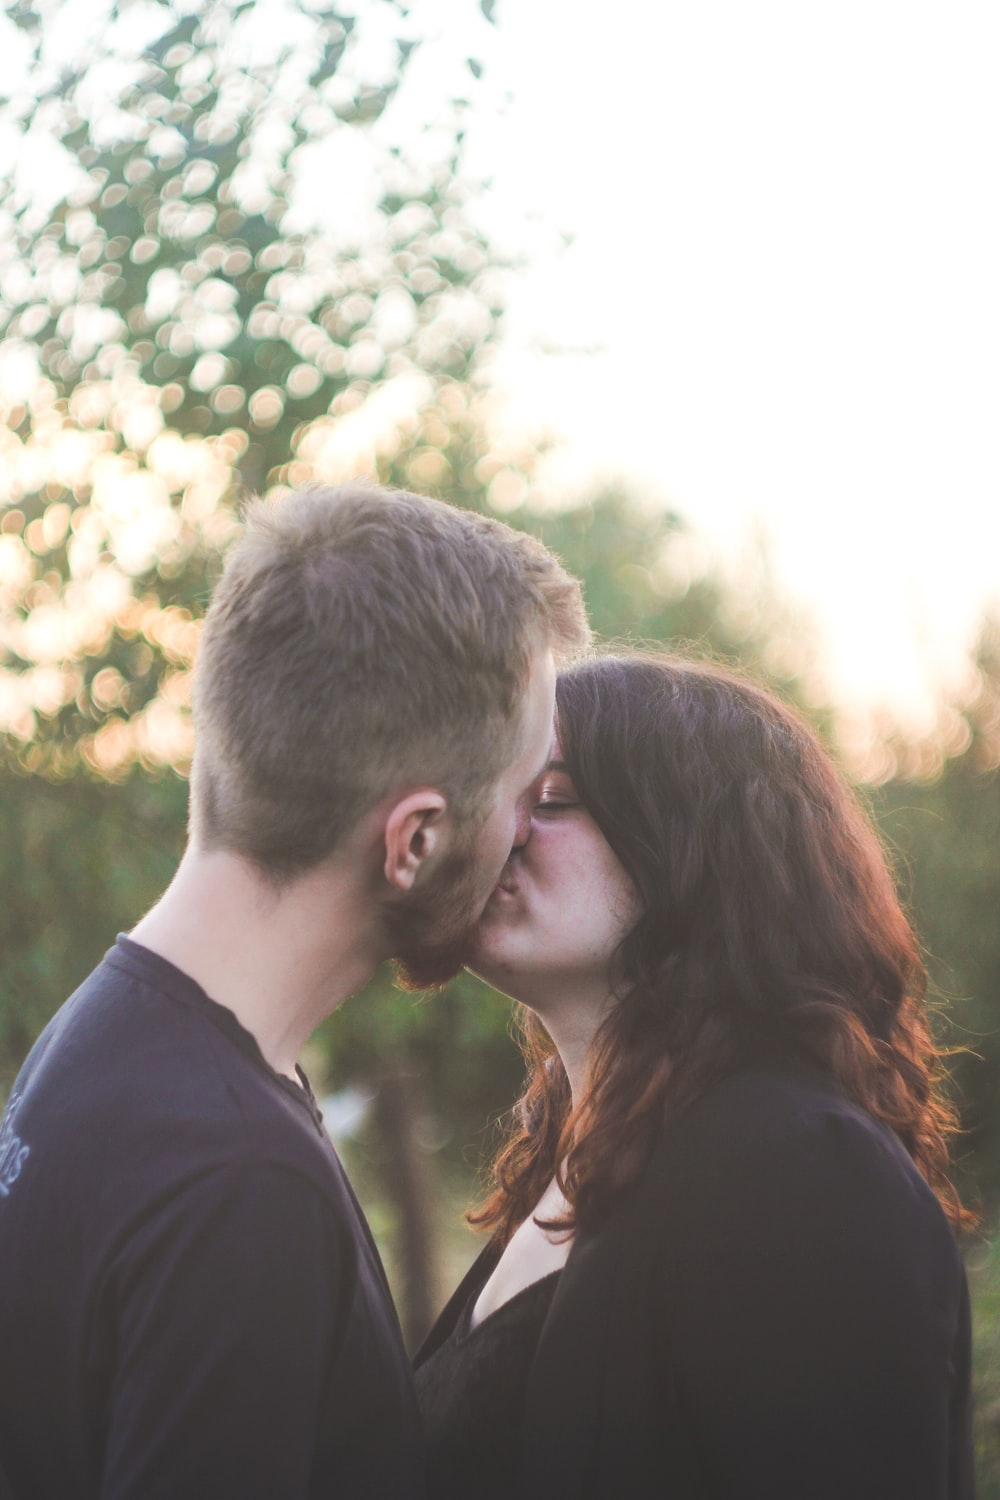 man and woman kissing during daytime